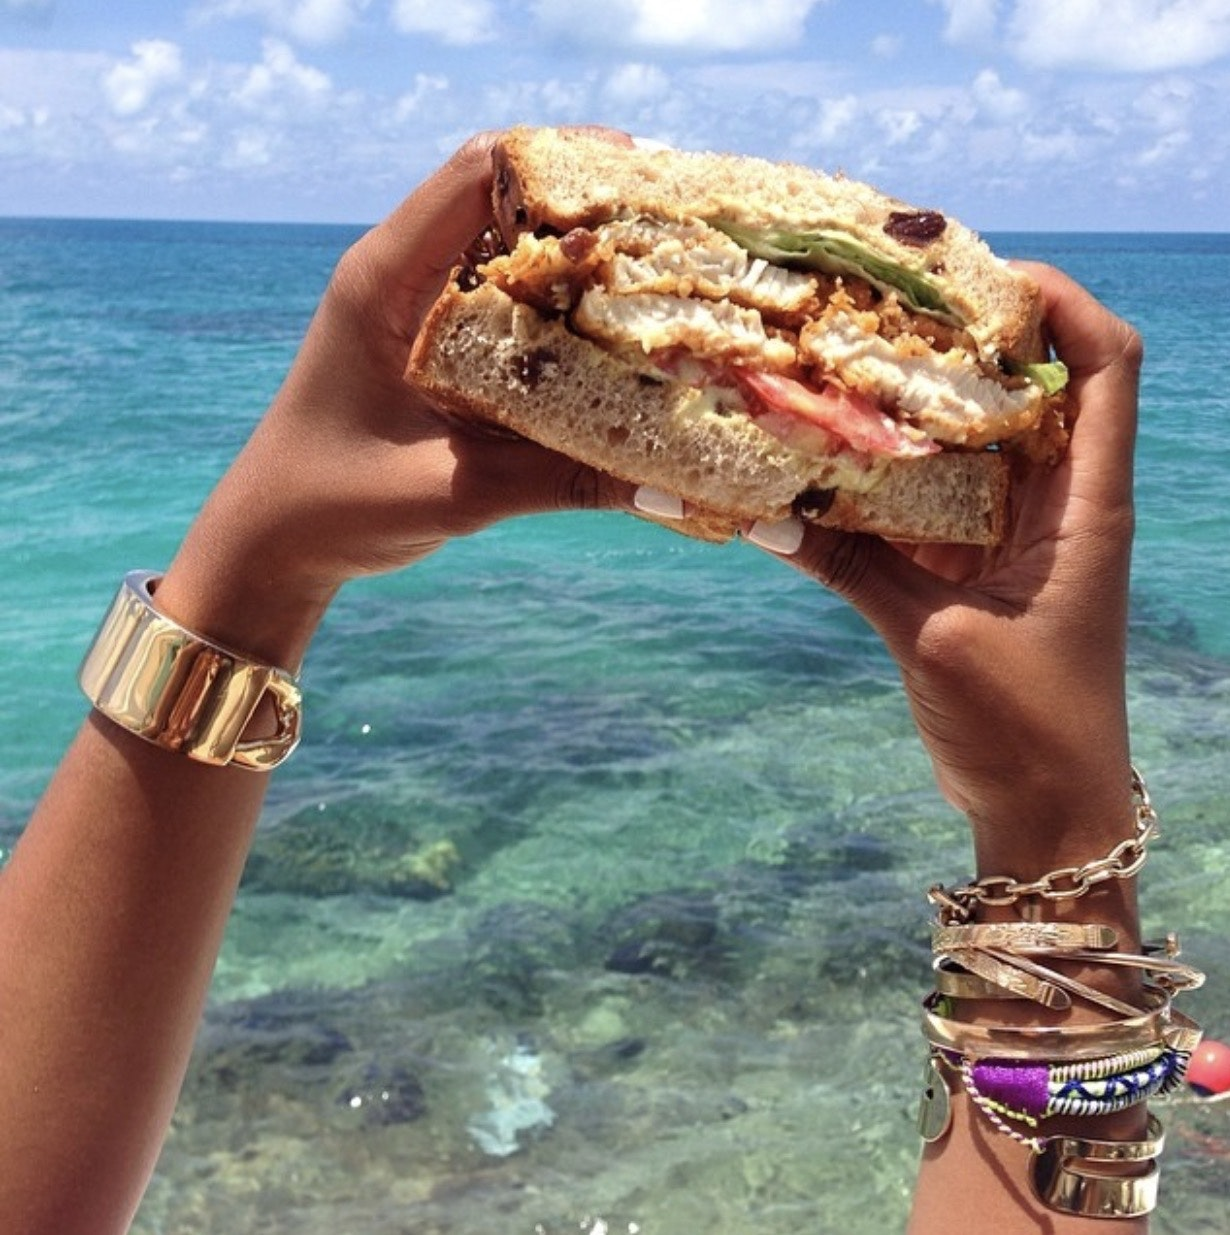 A fish sandwich from Seaside Grill. Credit: Shiona Turini